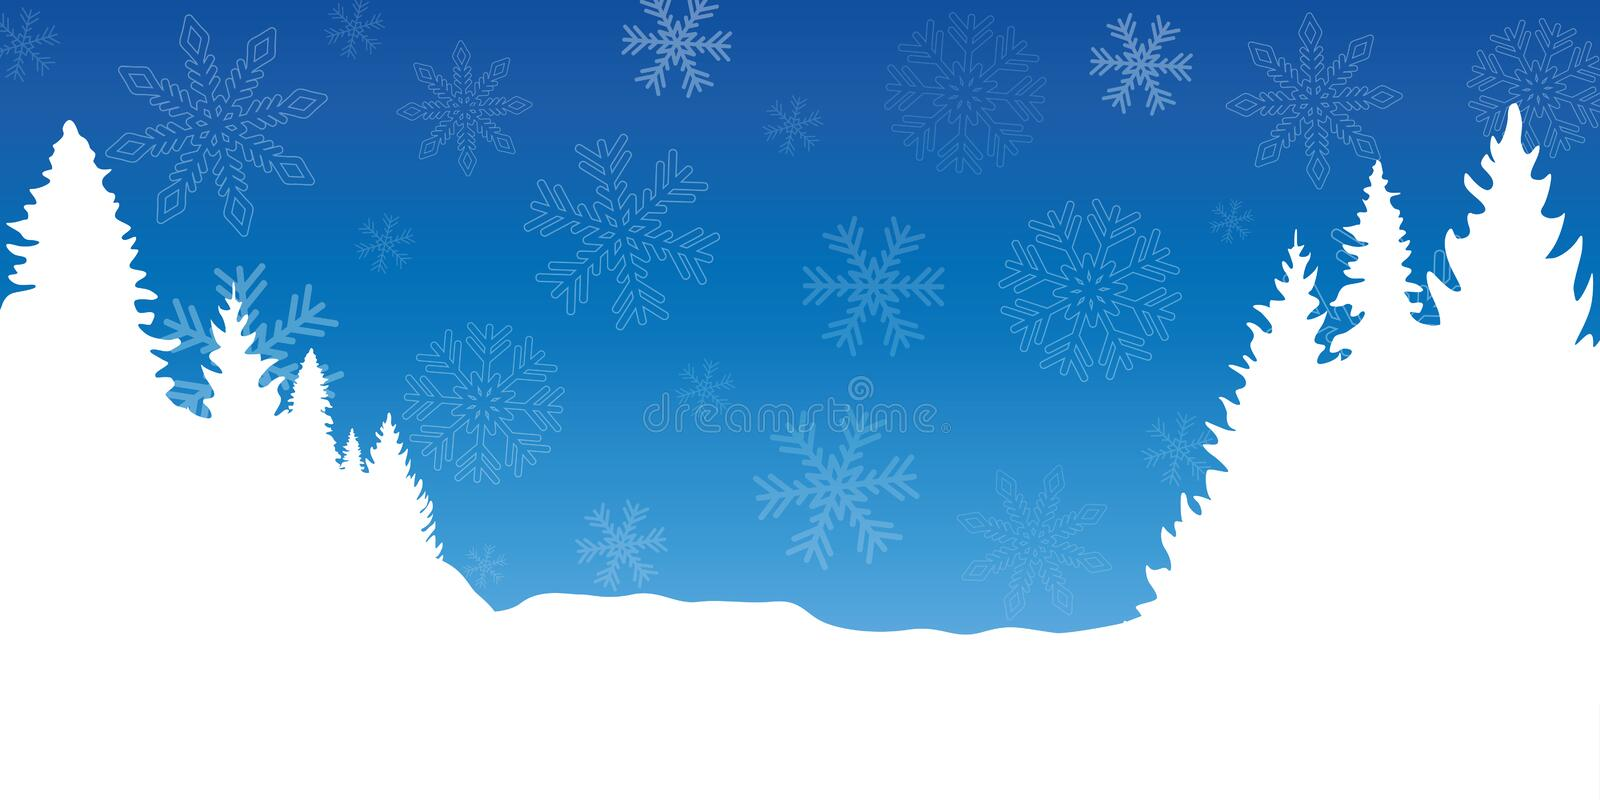 Blue and white chrismas winter background with snowflakes and firs stock illustration